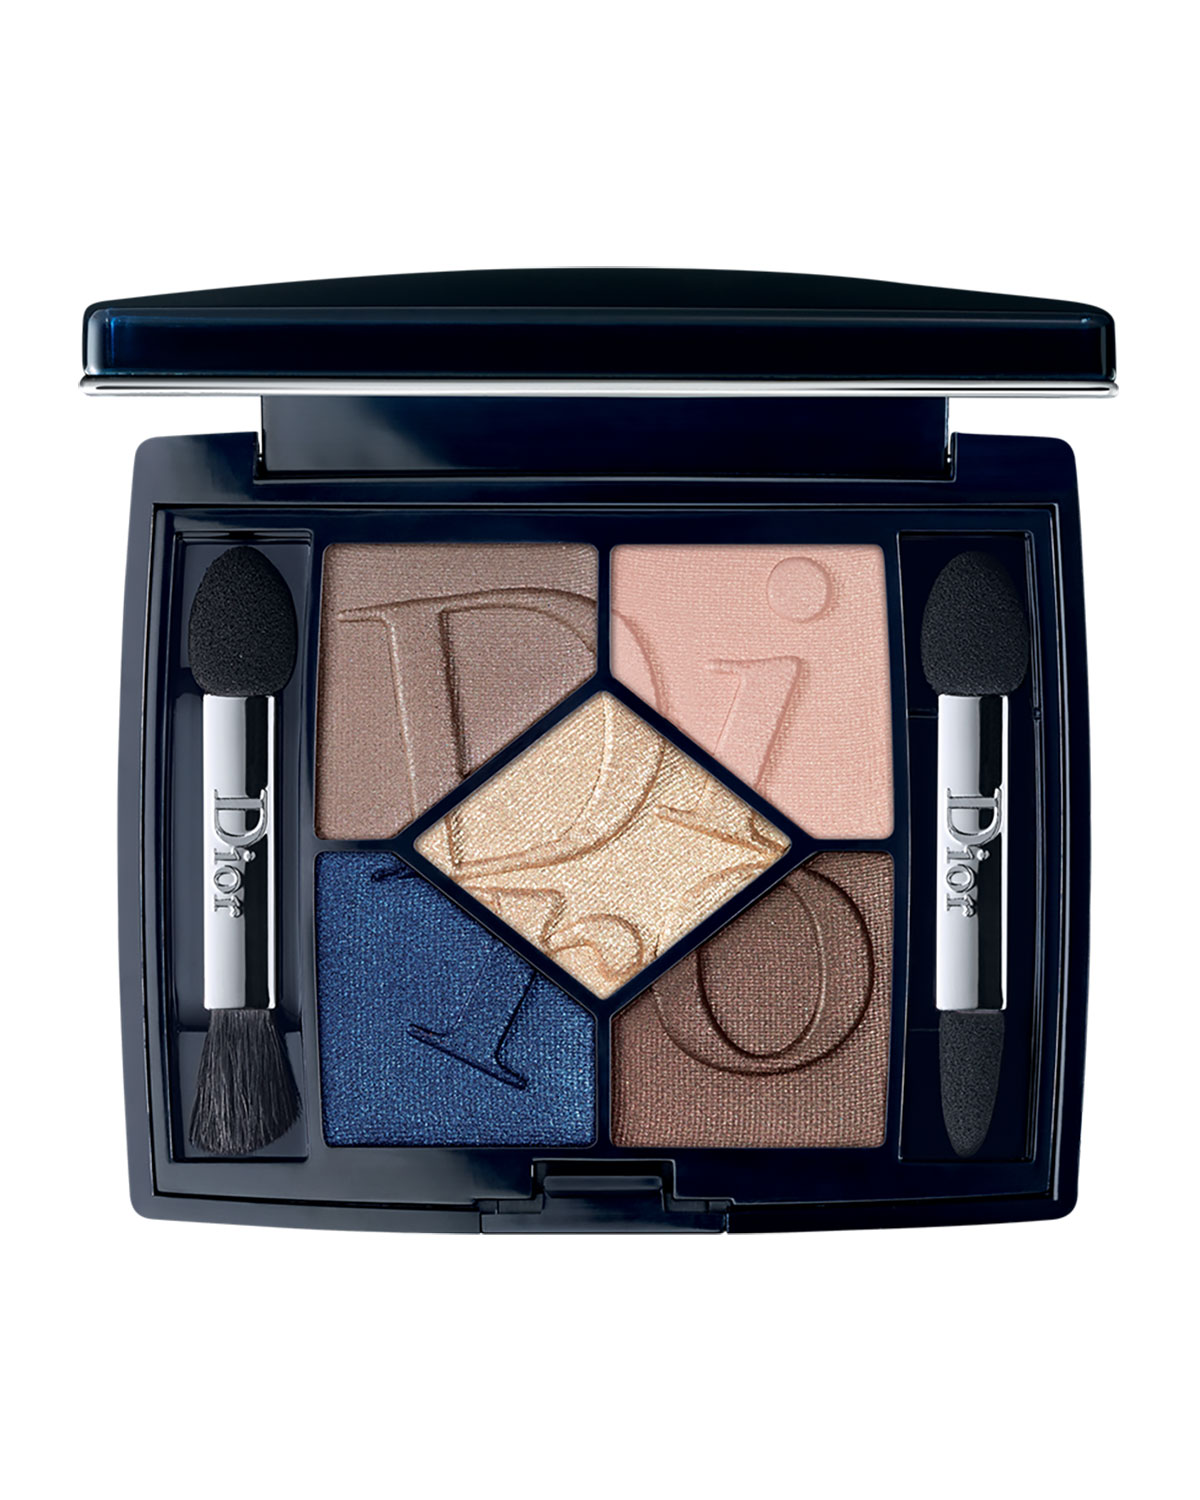 Dior Beauty Limited Edition 5 Couleurs Eyeshadow Palette - Cosmopolite Collection, 866 Eclectic